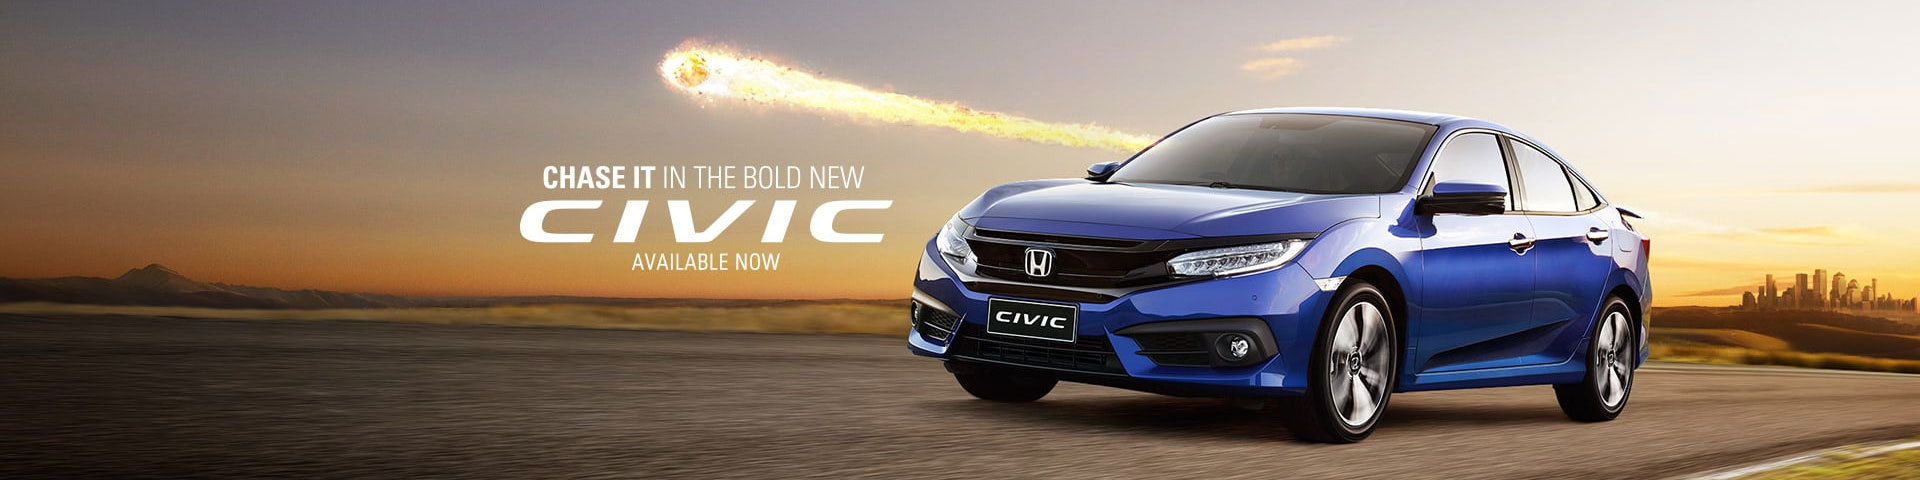 Bold New Honda Civic, Available Now